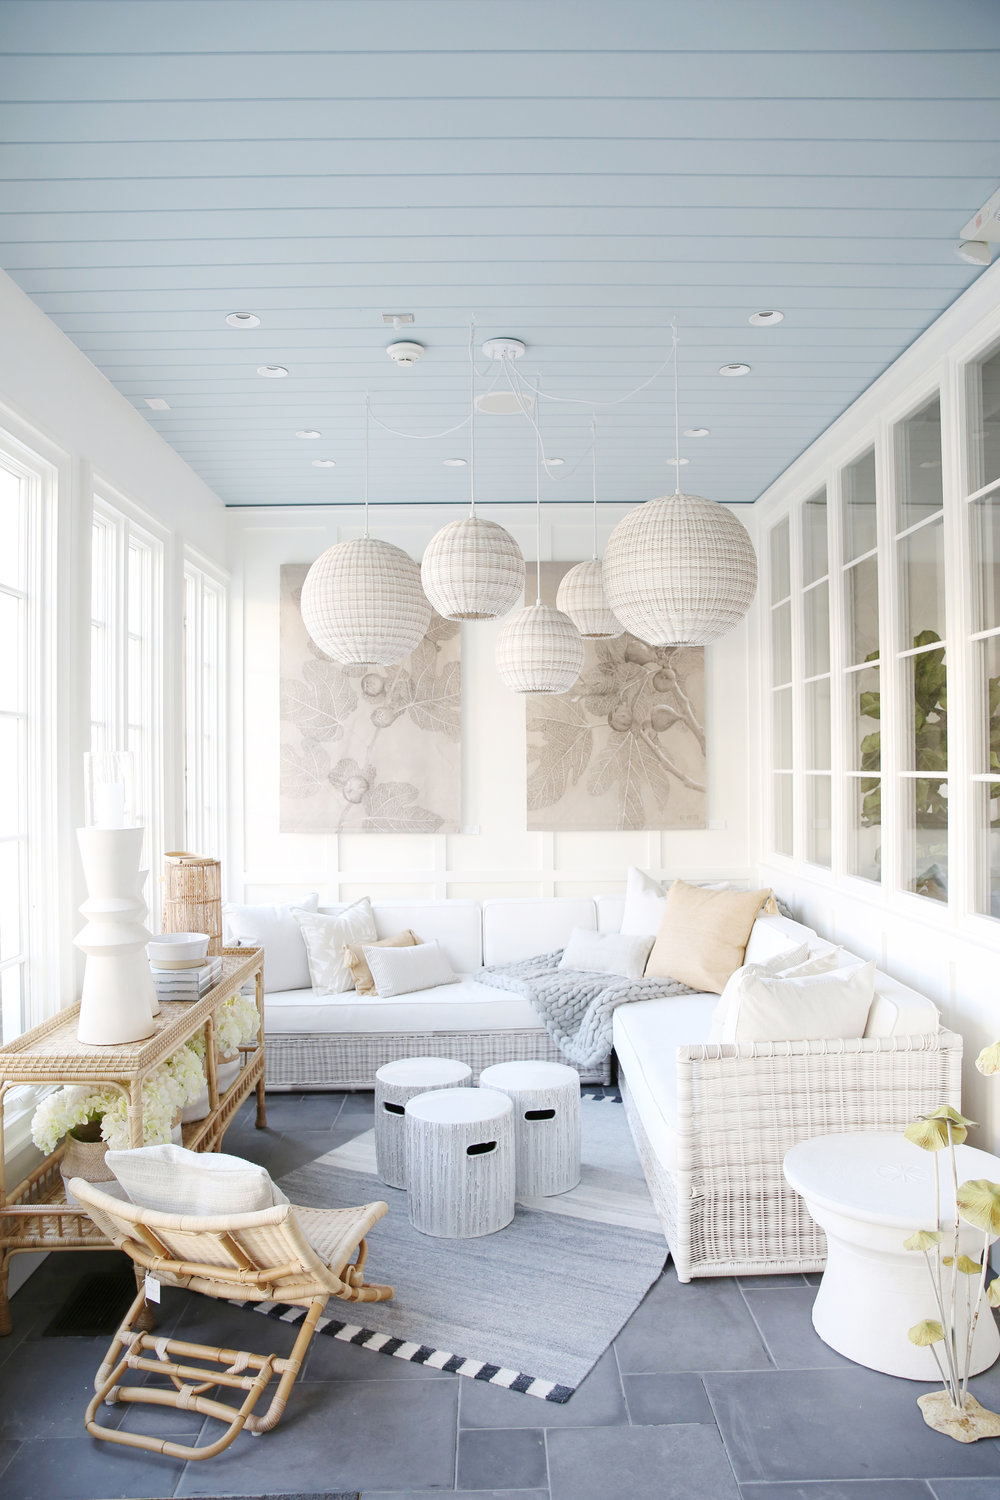 NYC And NJ Based Lifestyle Interior Design Photographer JENNIFER LAVELLE  PHOTOGRAPHY   U0026nbsp;interiors,